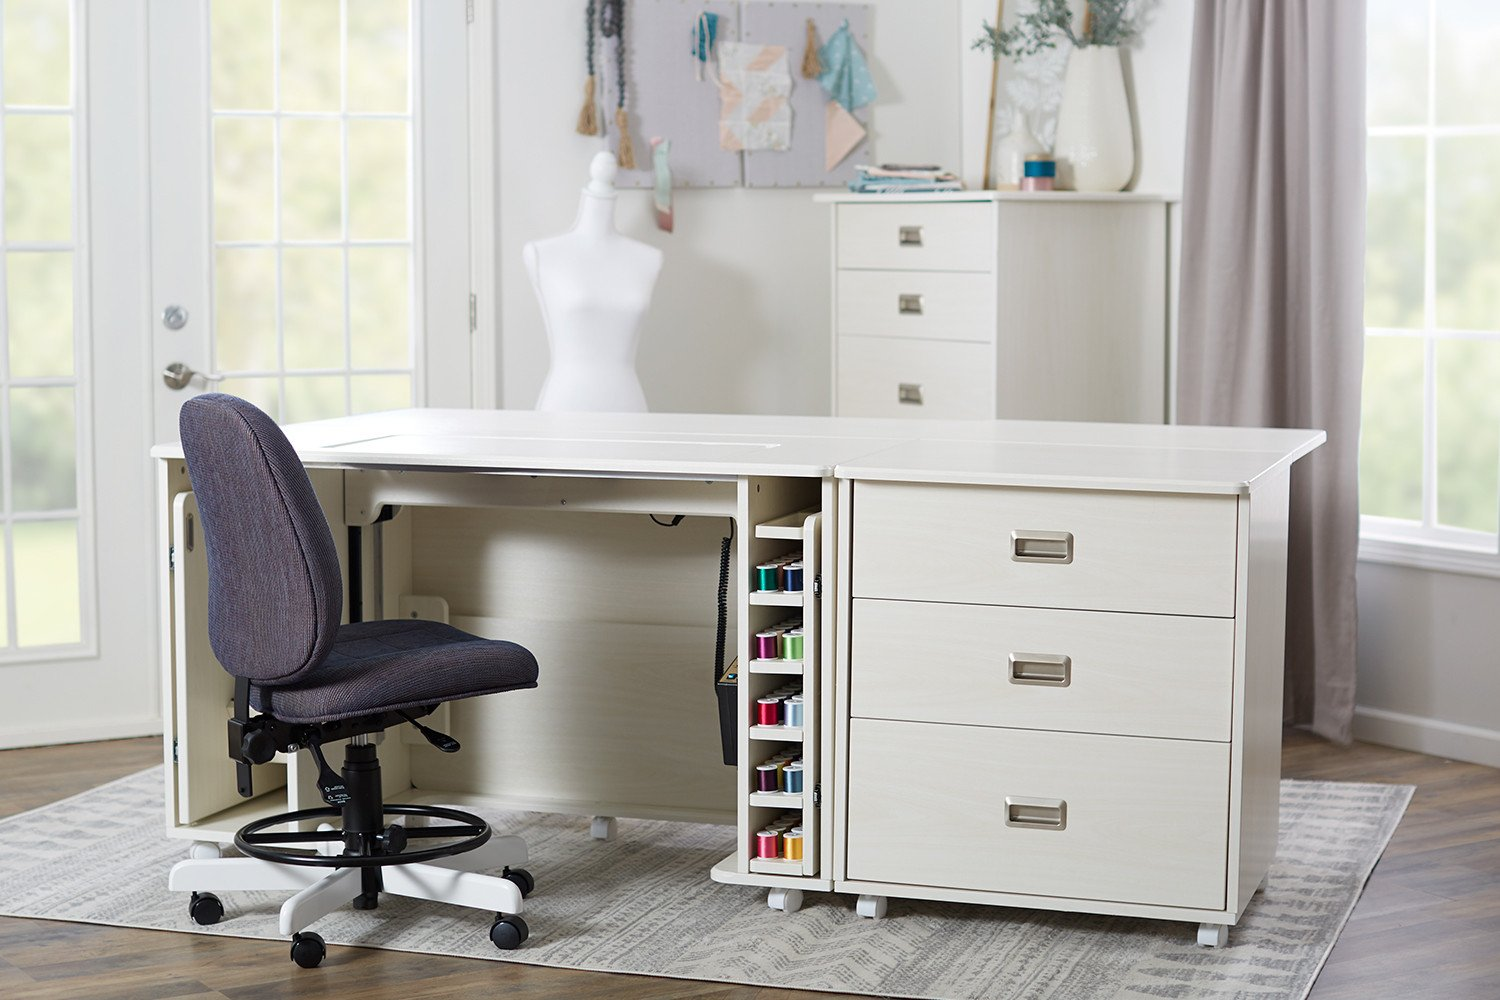 Artistry Drawer Center